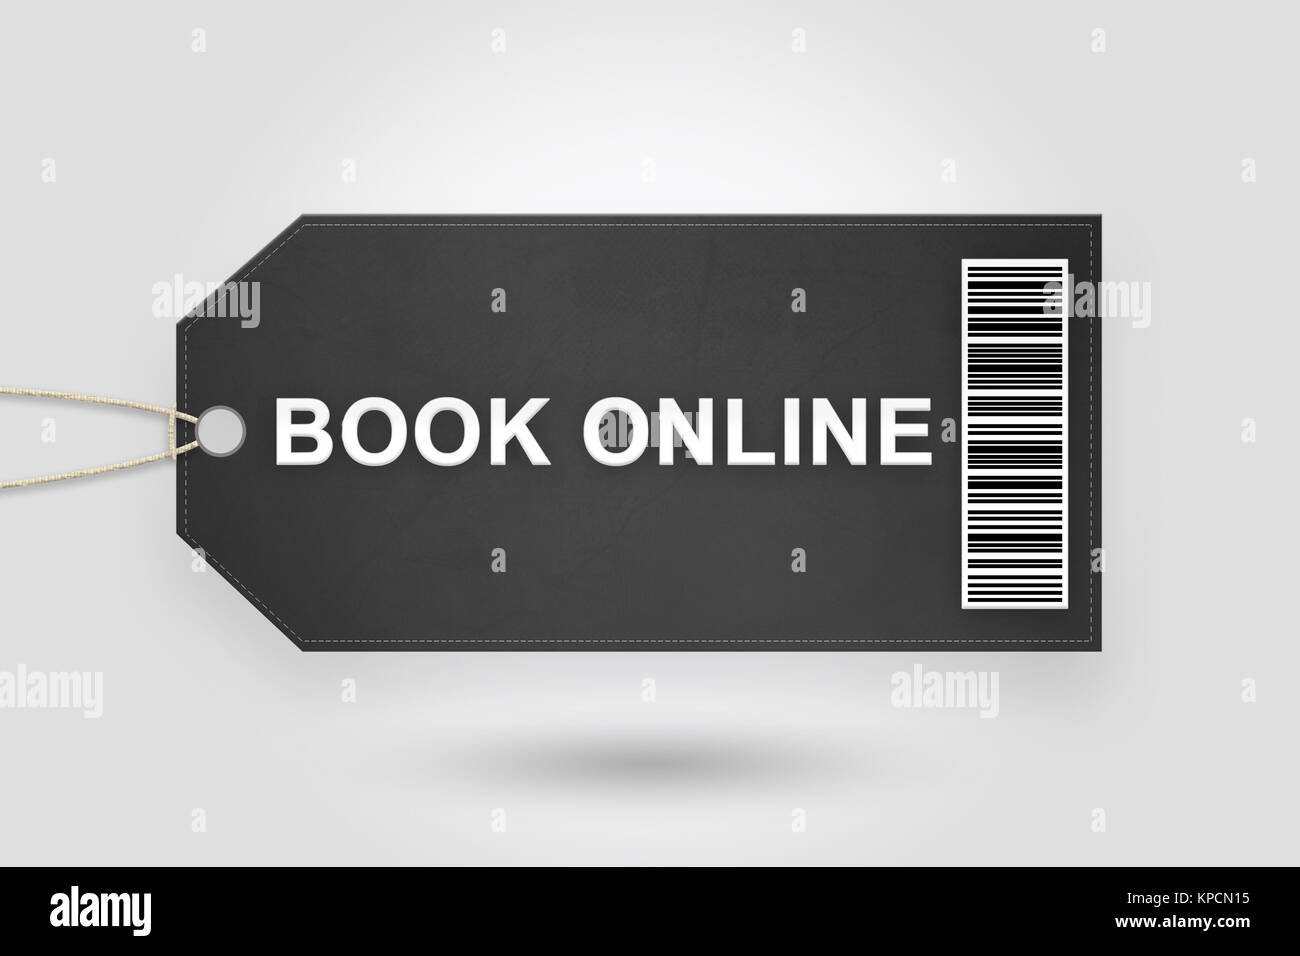 book online price tag - Stock Image